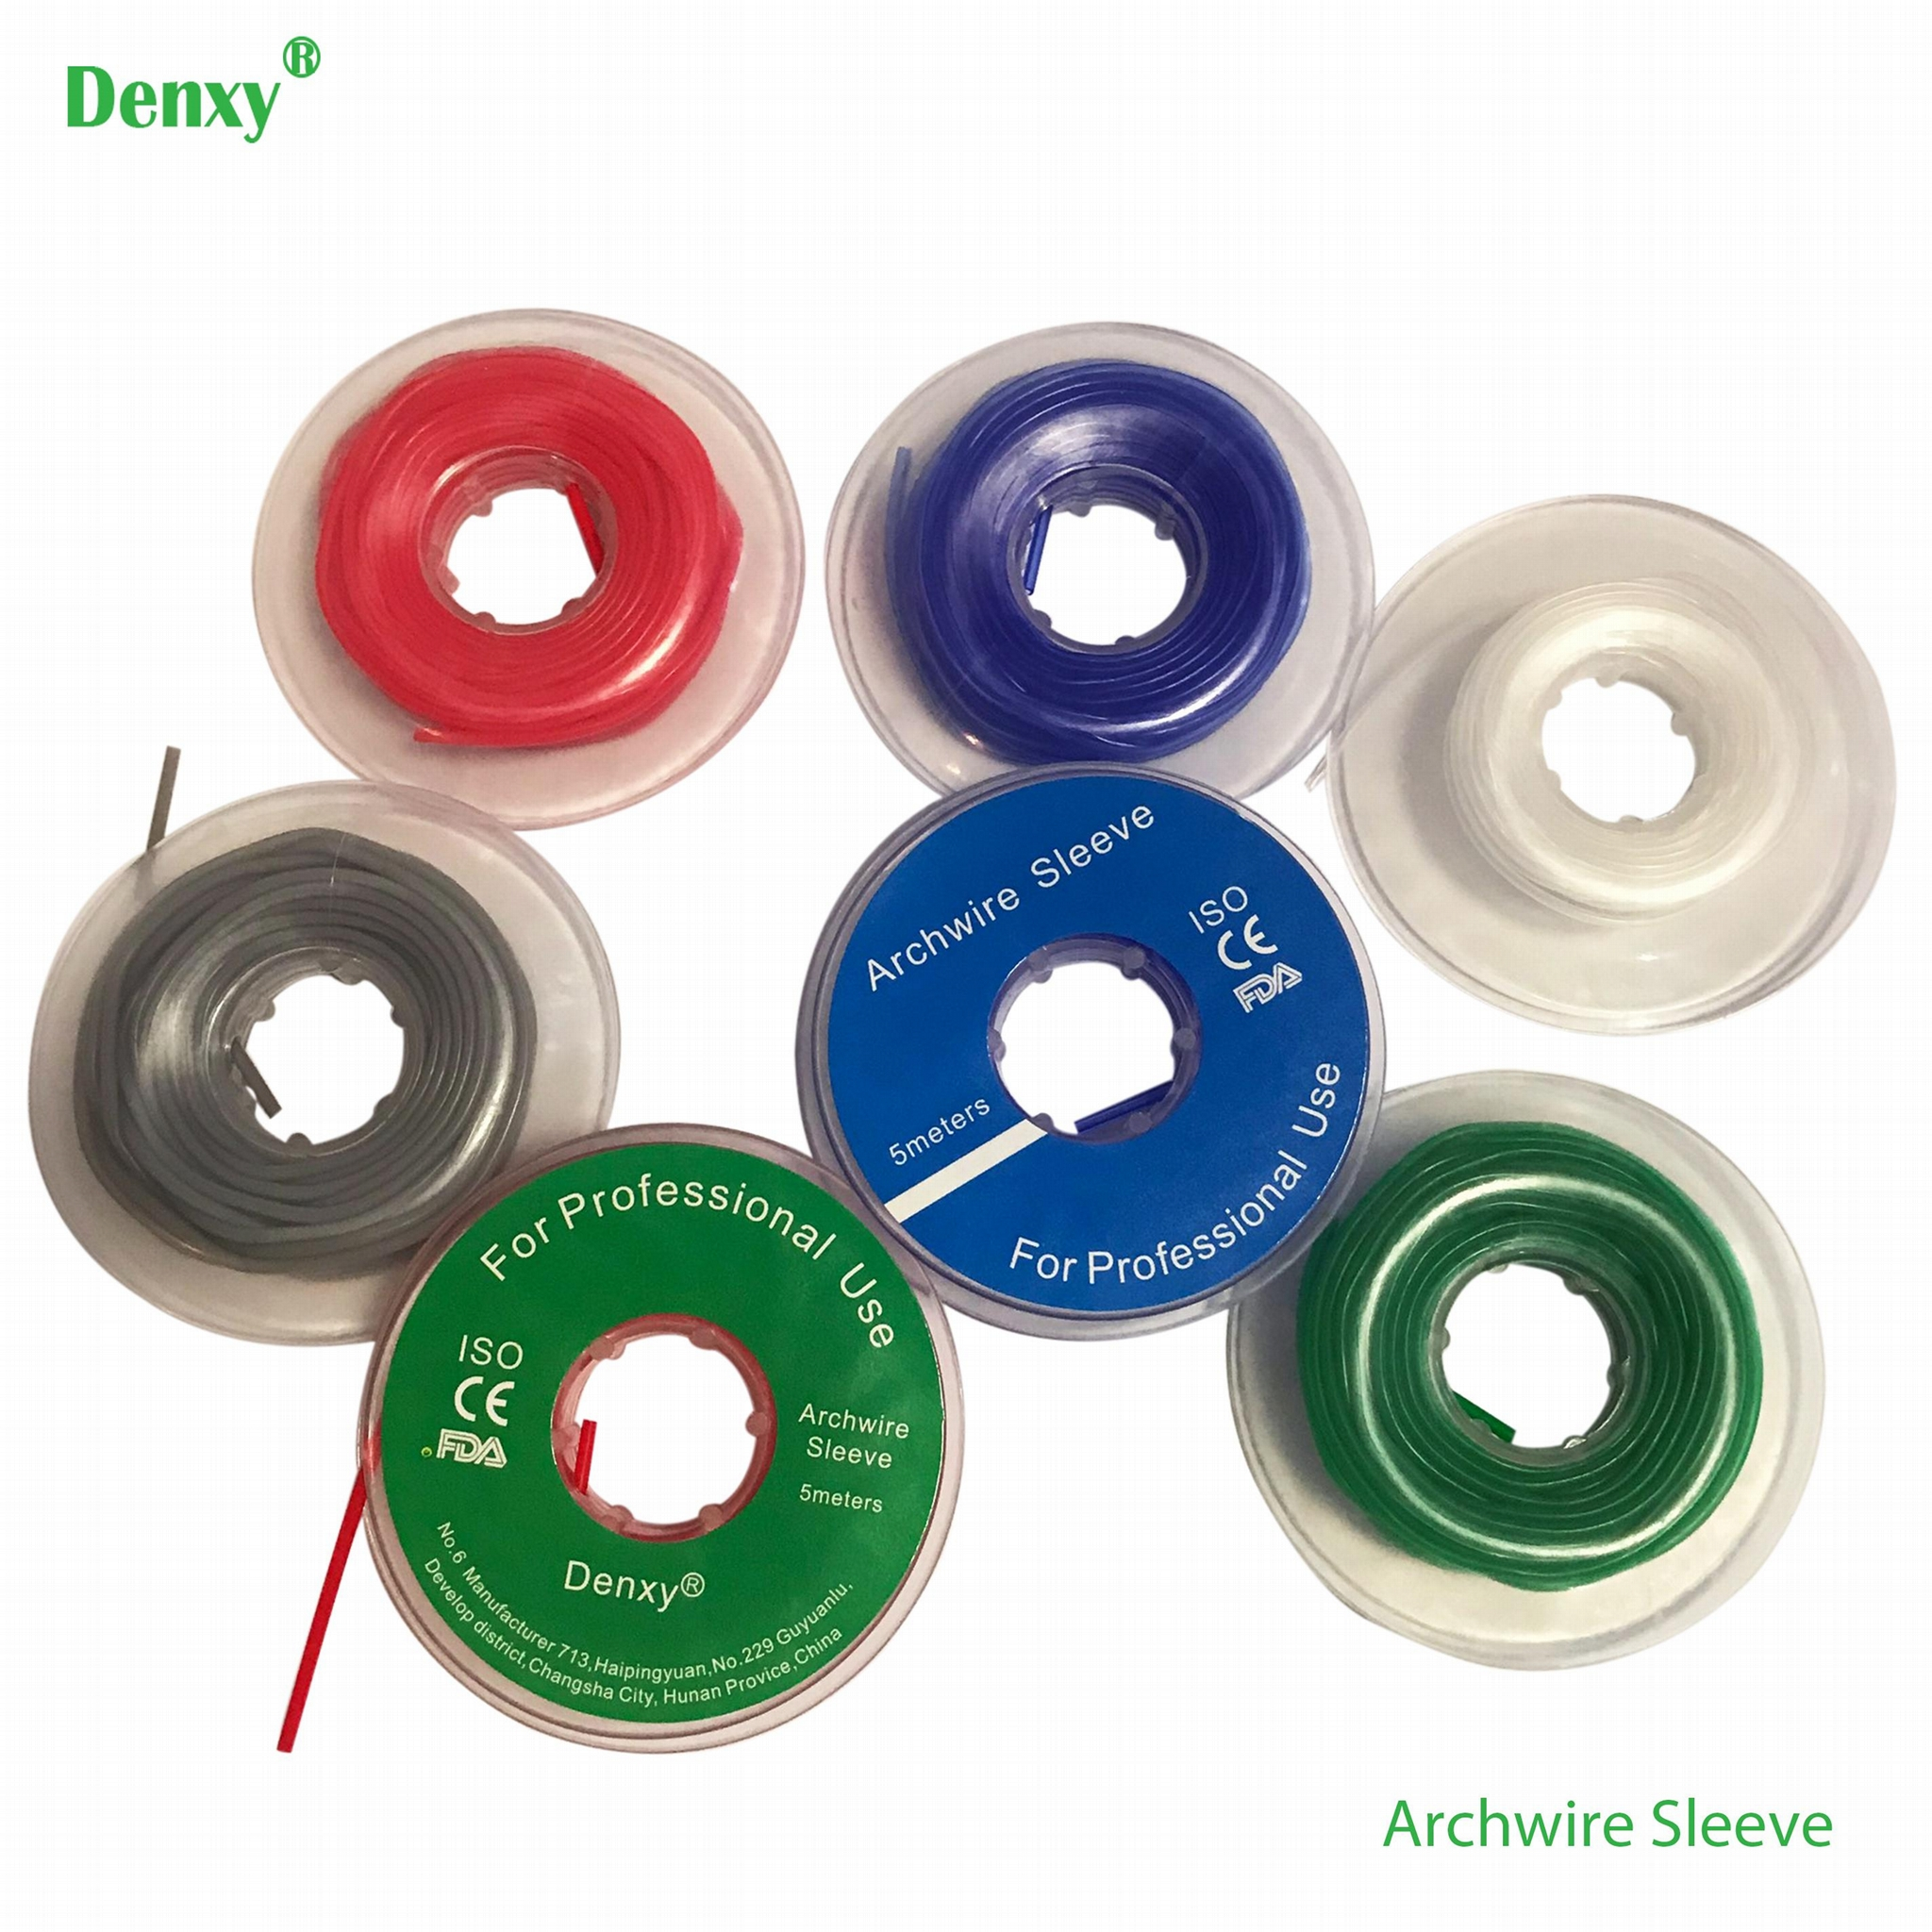 Orthodontic Protect Archwire Sleeve arch wire pump dental orthodontic 7